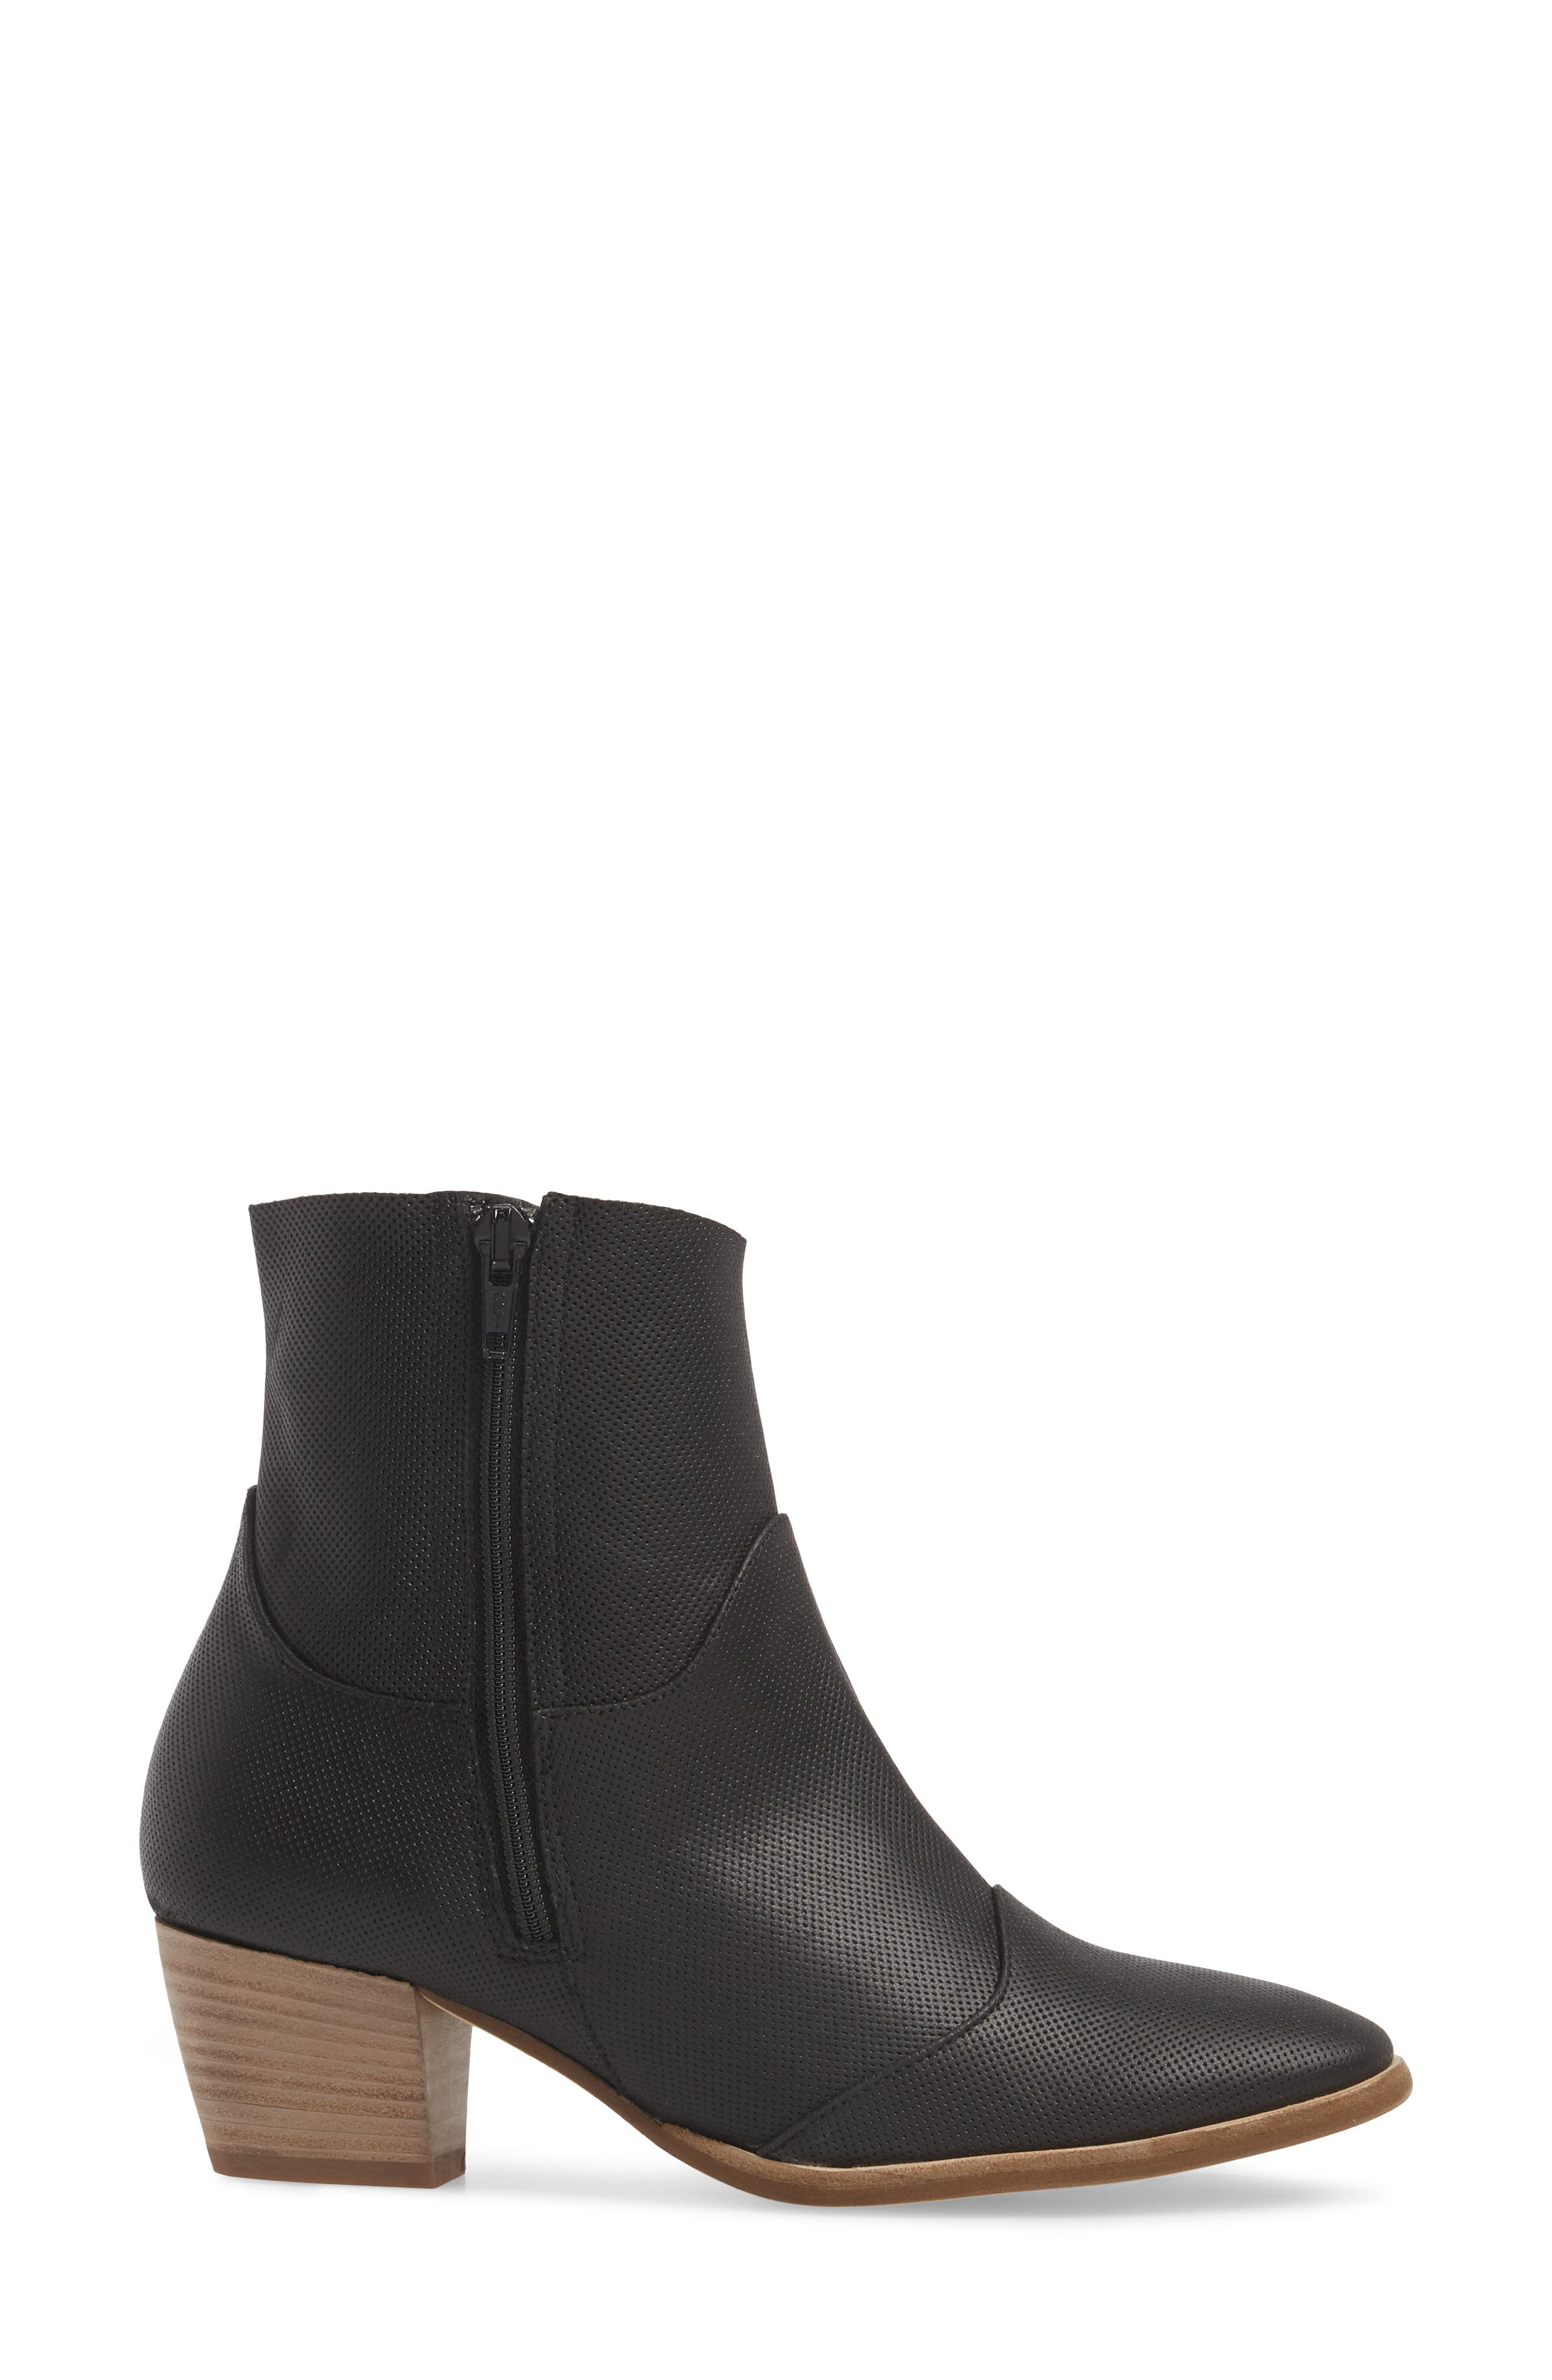 Robin Bootie,                             Alternate thumbnail 3, color,                             BLACK LEATHER